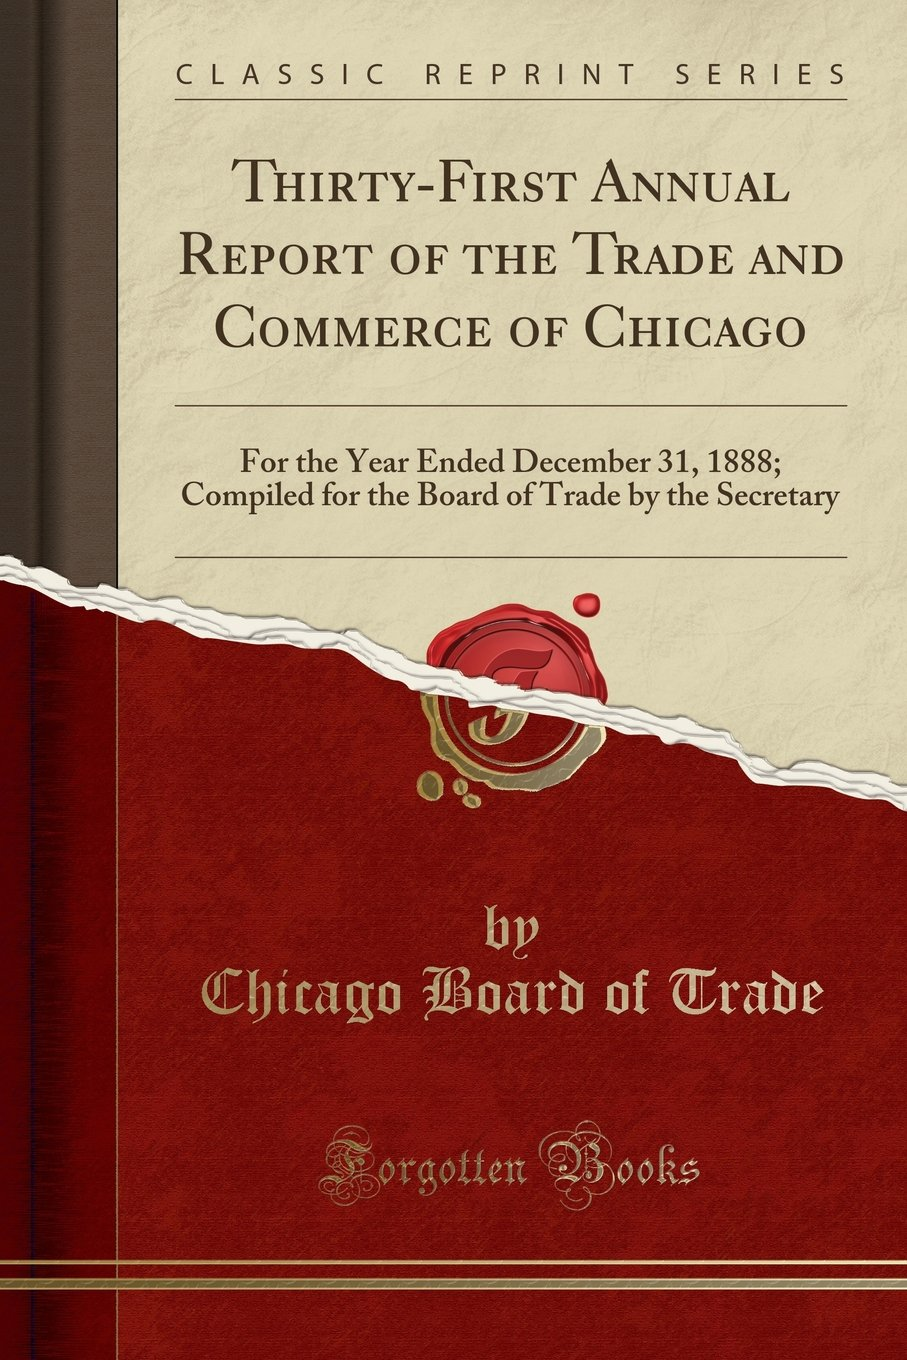 Download Thirty-First Annual Report of the Trade and Commerce of Chicago: For the Year Ended December 31, 1888; Compiled for the Board of Trade by the Secretary (Classic Reprint) PDF